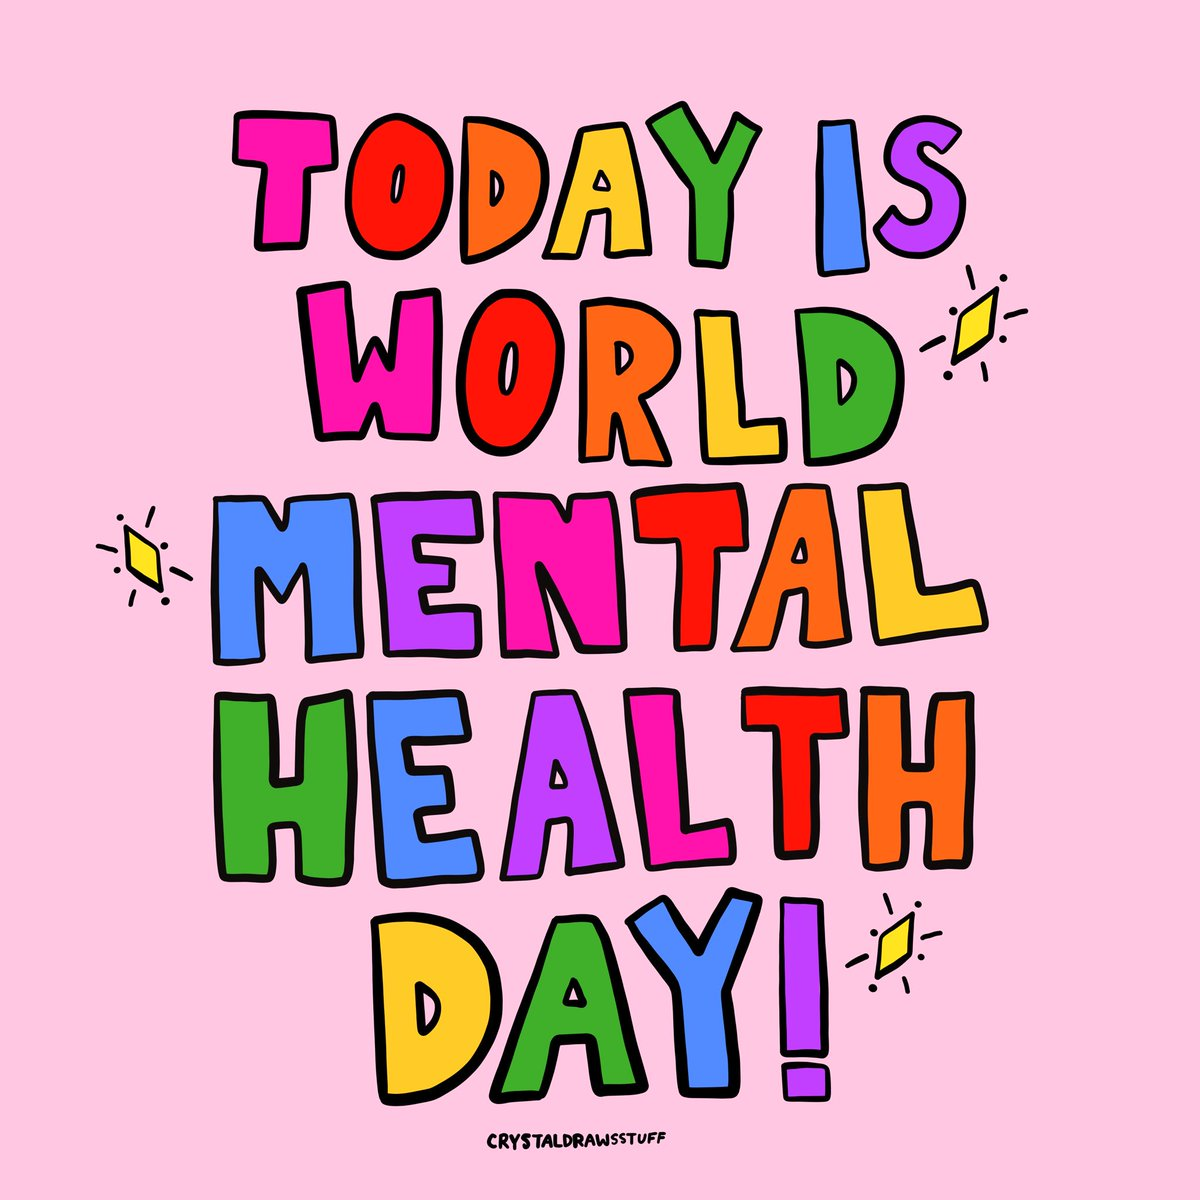 TODAY IS WORLD MENTAL HEALTH DAY! Let's be open to starting a conversation, let's help people, let's remind everyone we're not alone. 🧠✨🌎🌈 #WorldMentalHealthDay #MentalHealthAwarenessWeek #MentalHealthMatters